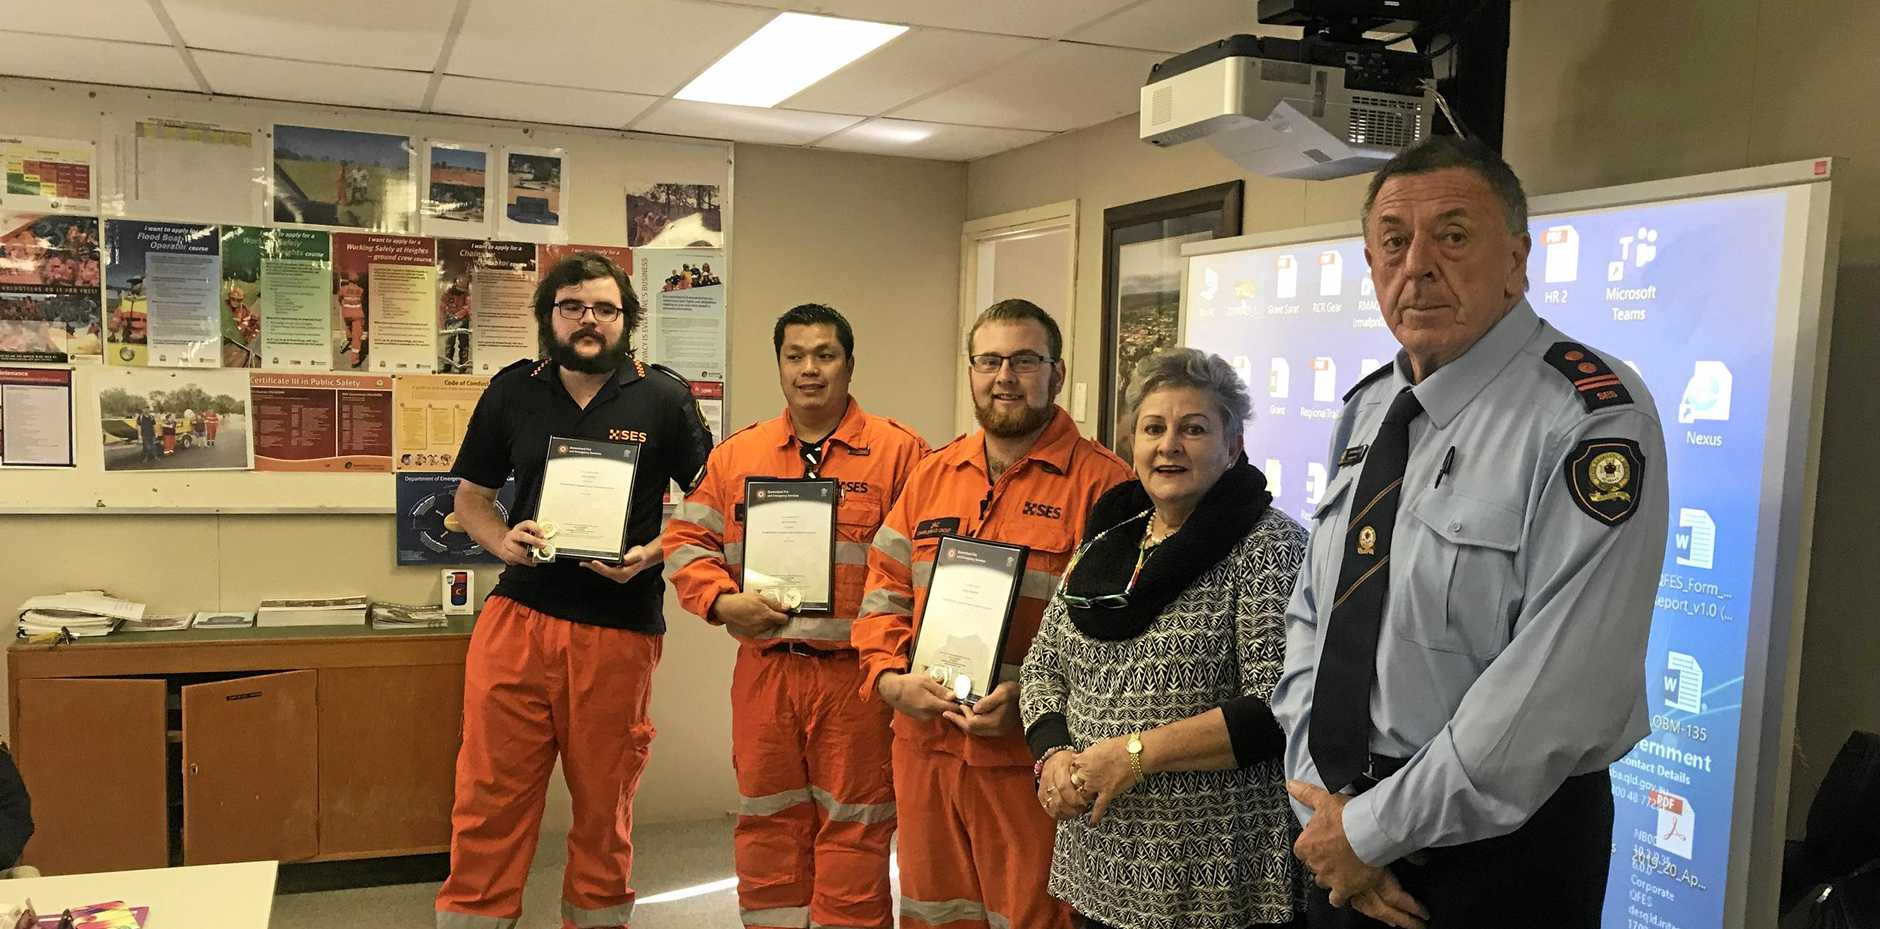 GIVING BACK: Charleville SES volunteers after receiving their certificates for becoming floodboat operators.